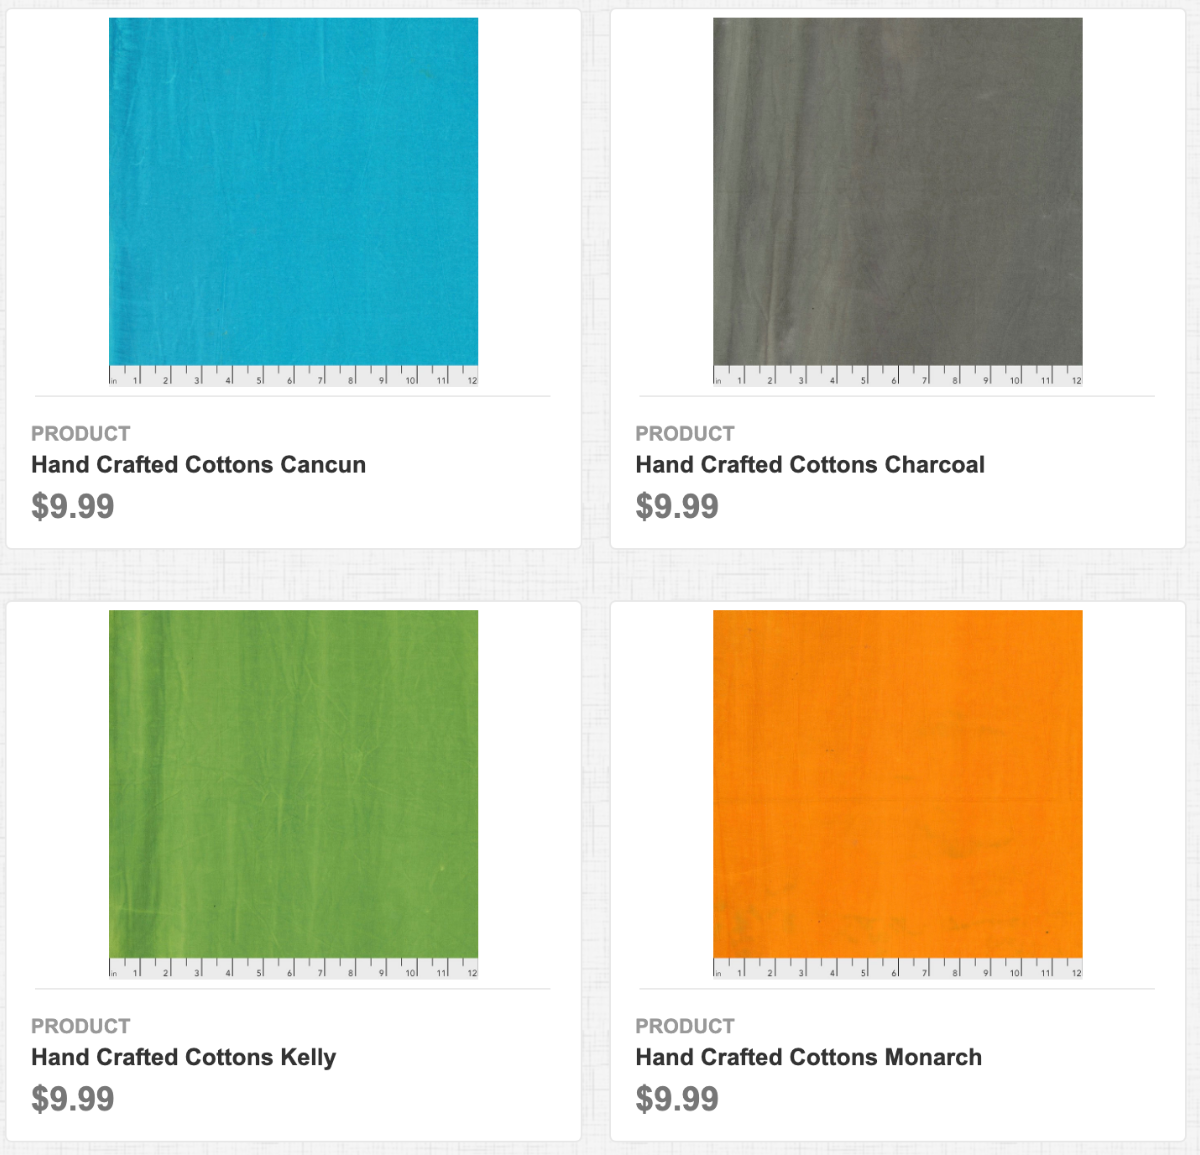 Hand Crafted Cottons: Cancun, Charcoal, Kelly, and Monarch